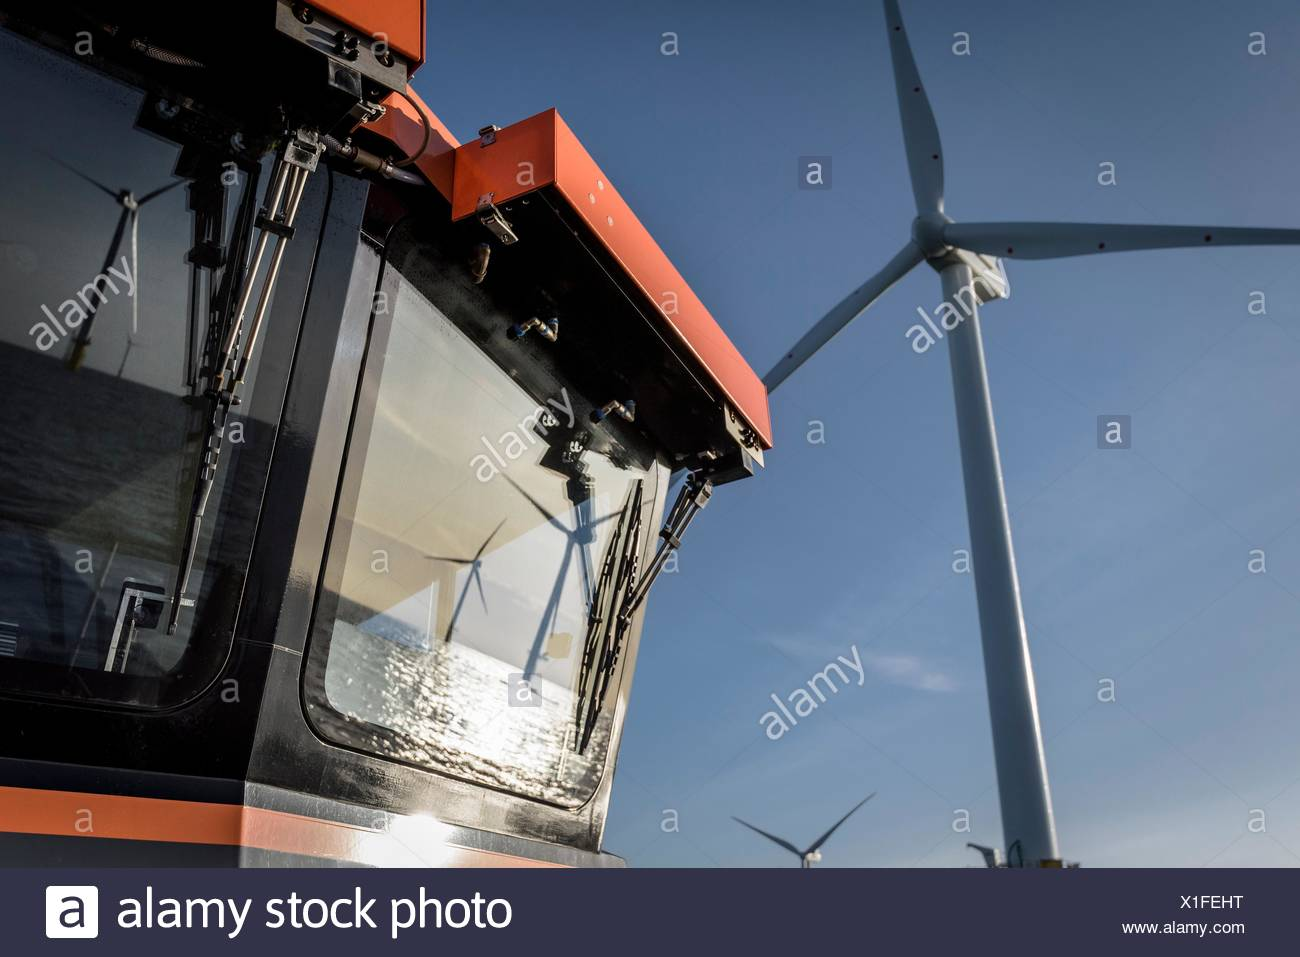 Reflections of offshore wind farm on boat at sea - Stock Image